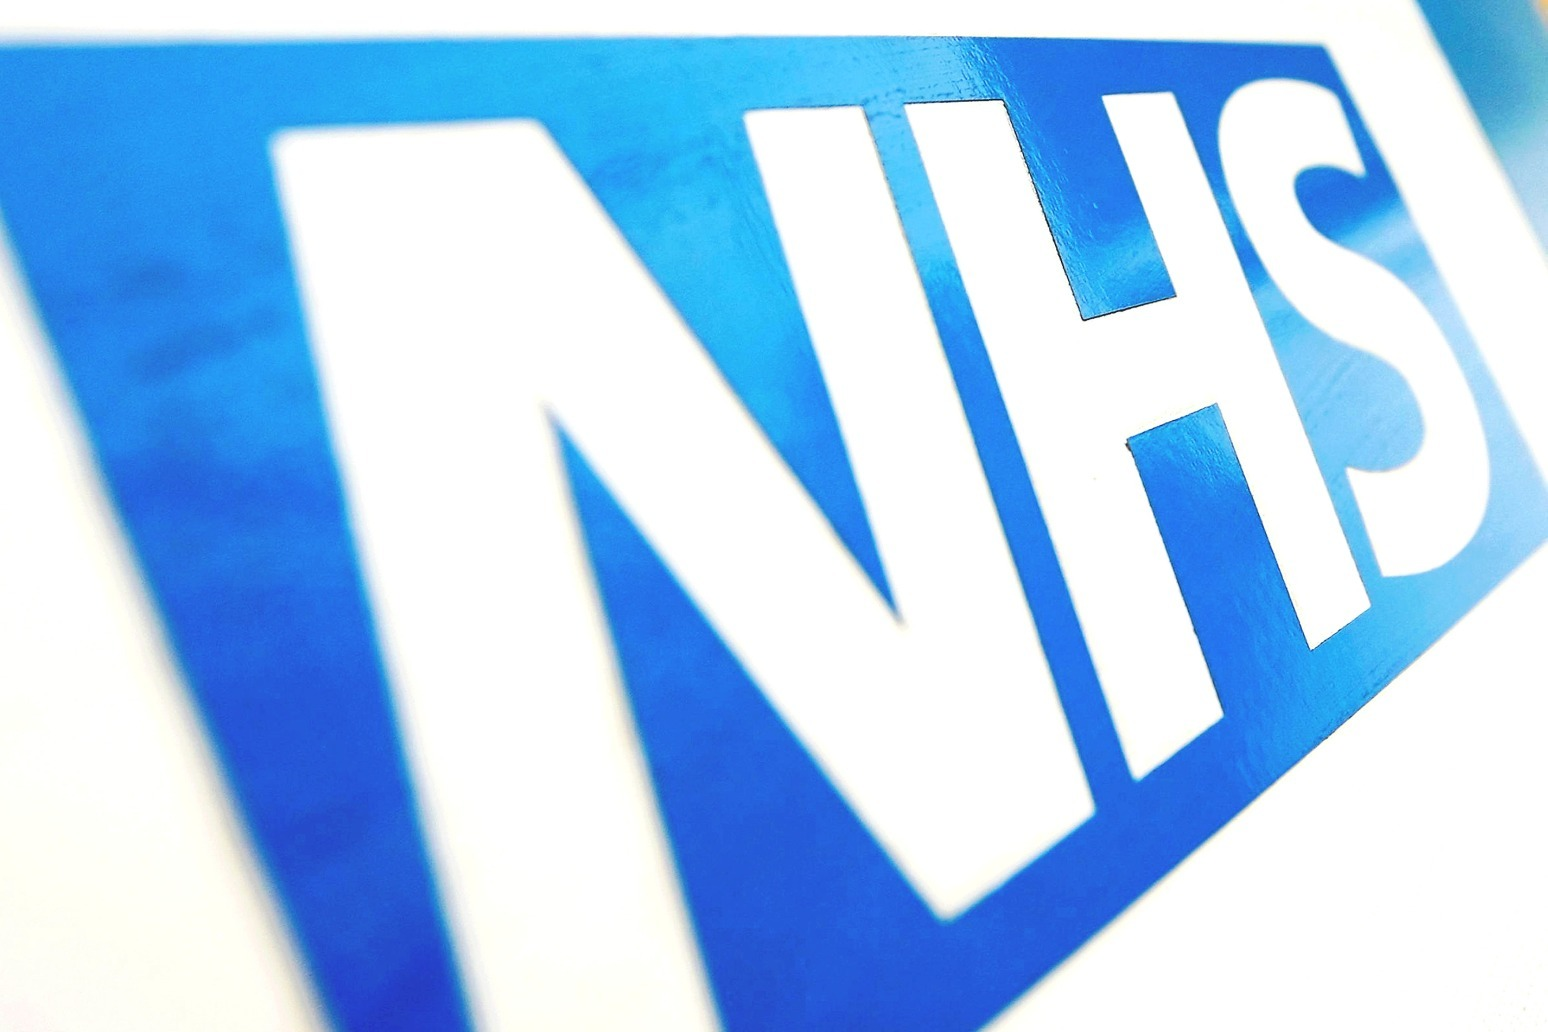 NHS waiting list in England could soar